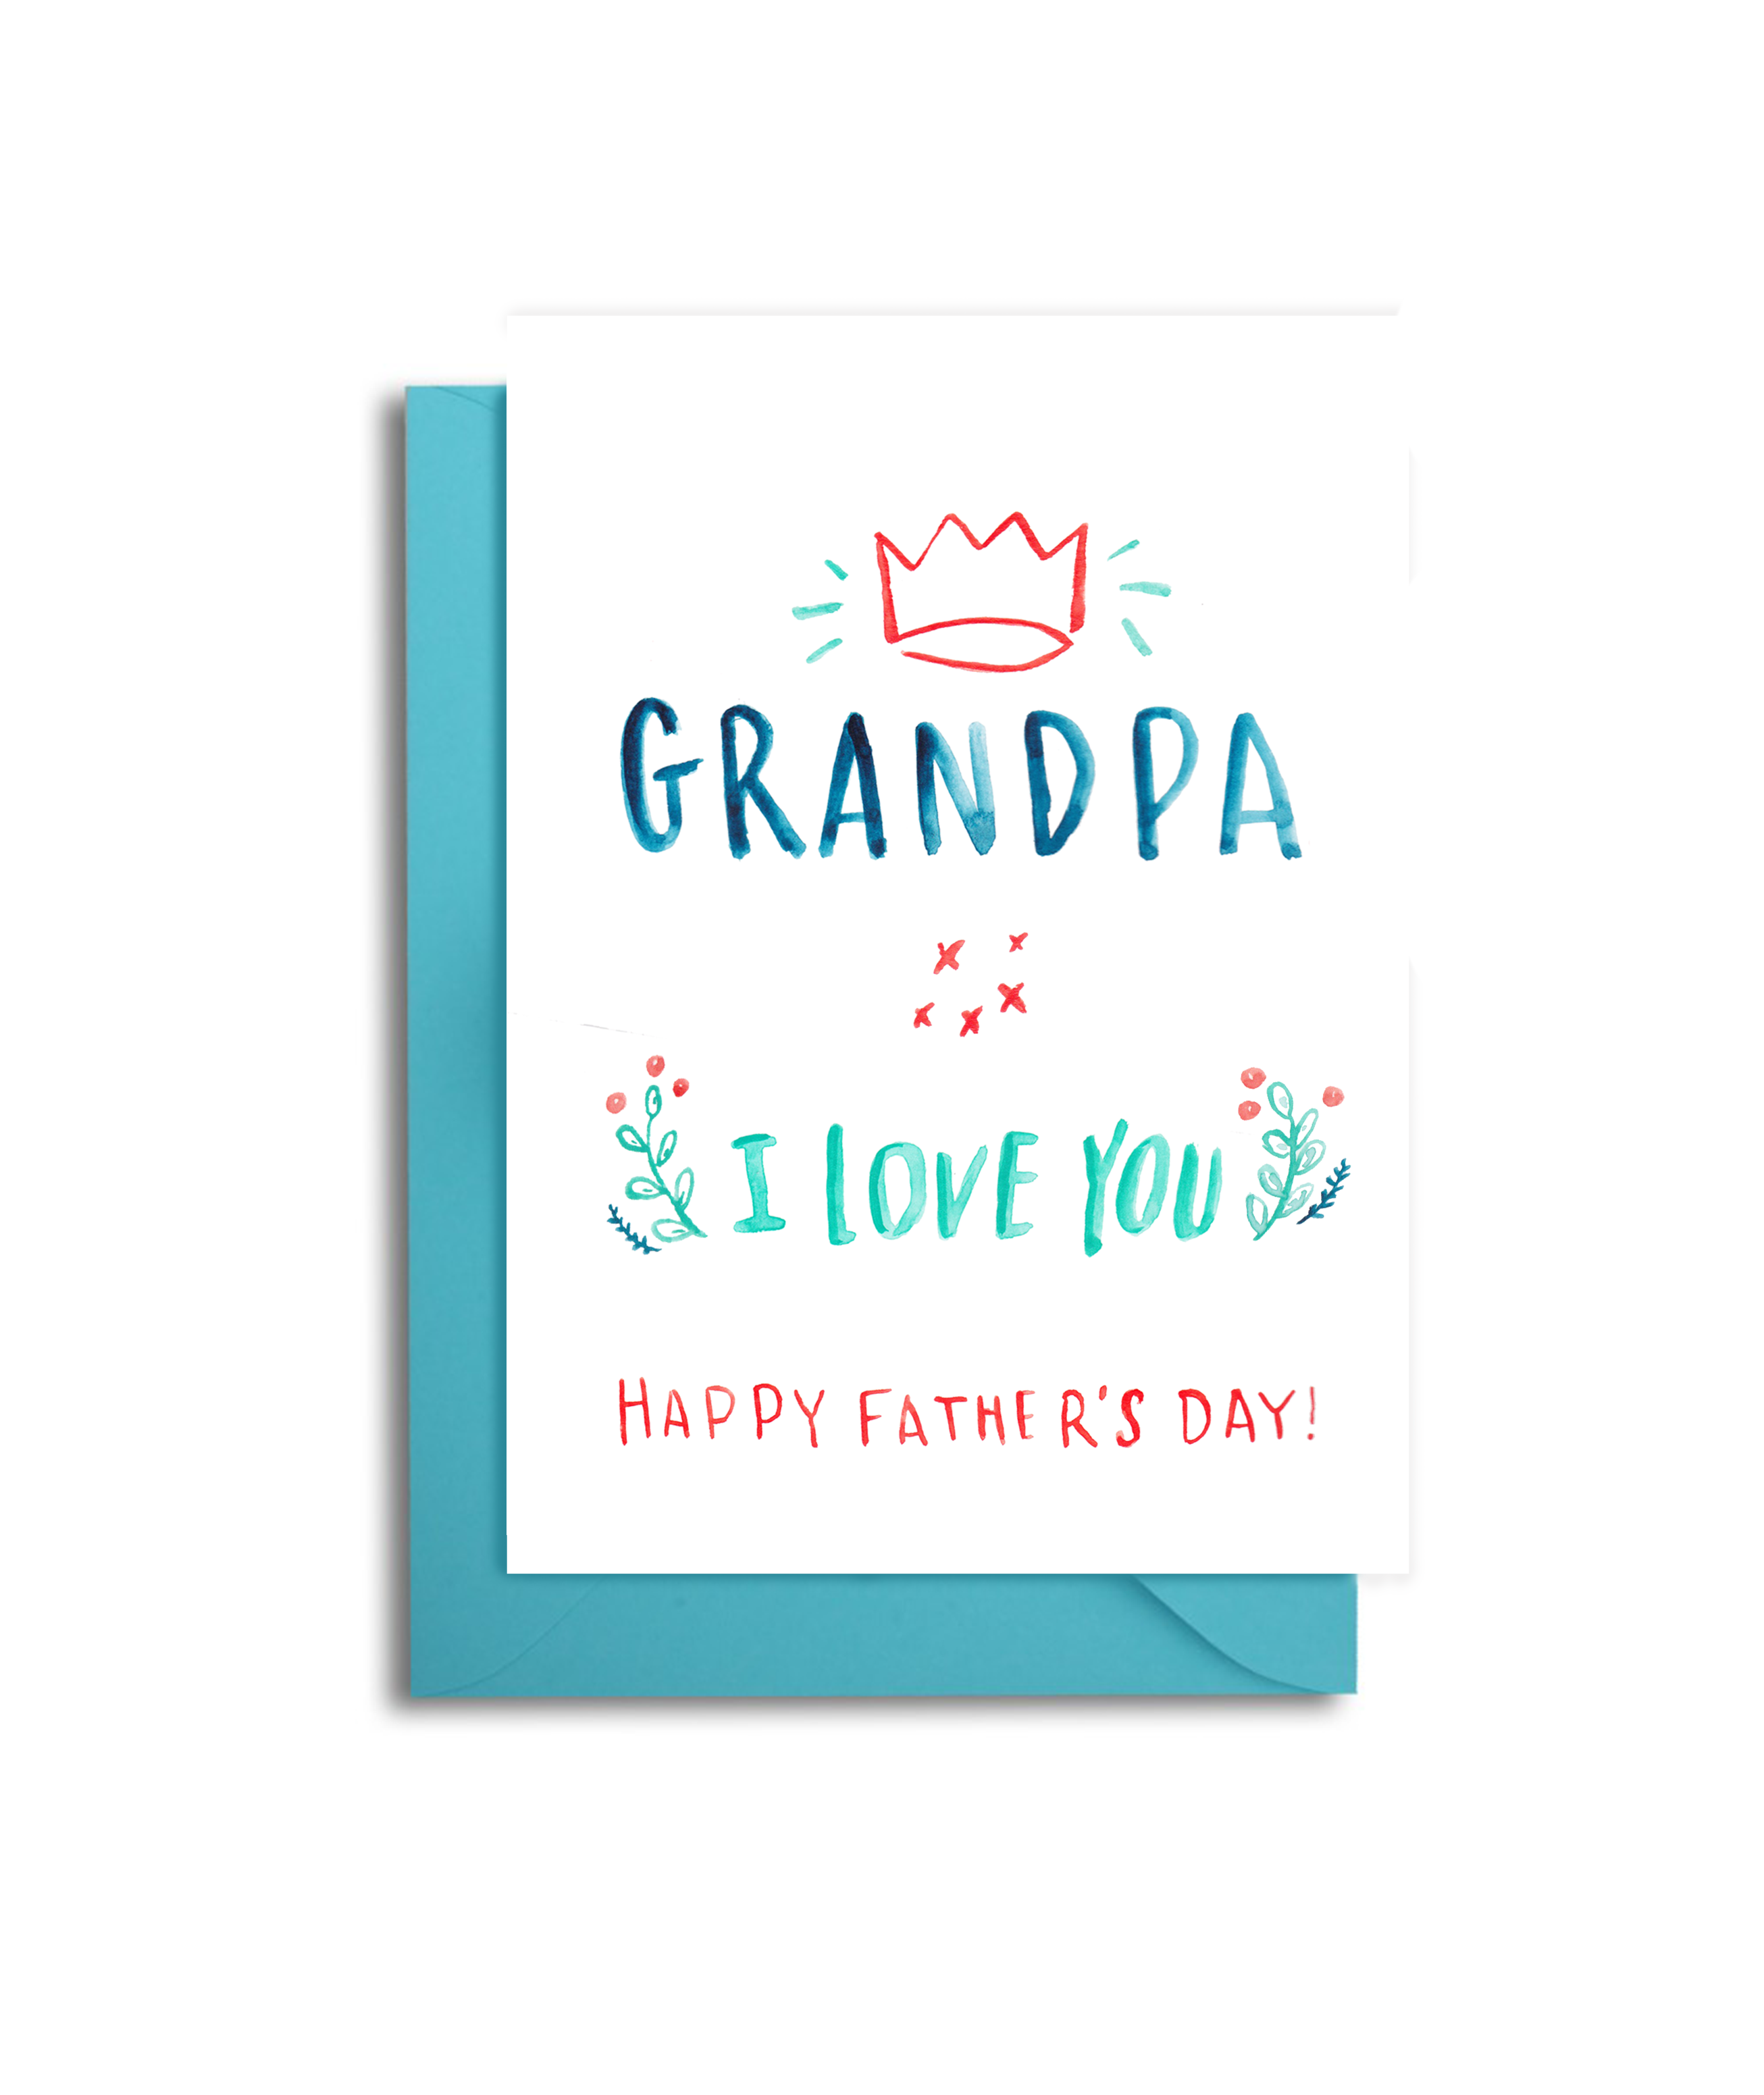 Father Figure Father's Day Card - Father's Day for Step Dad - Fathers Day Card for Grandpa - Father's Day for Uncle - Father-in-law Father's Day